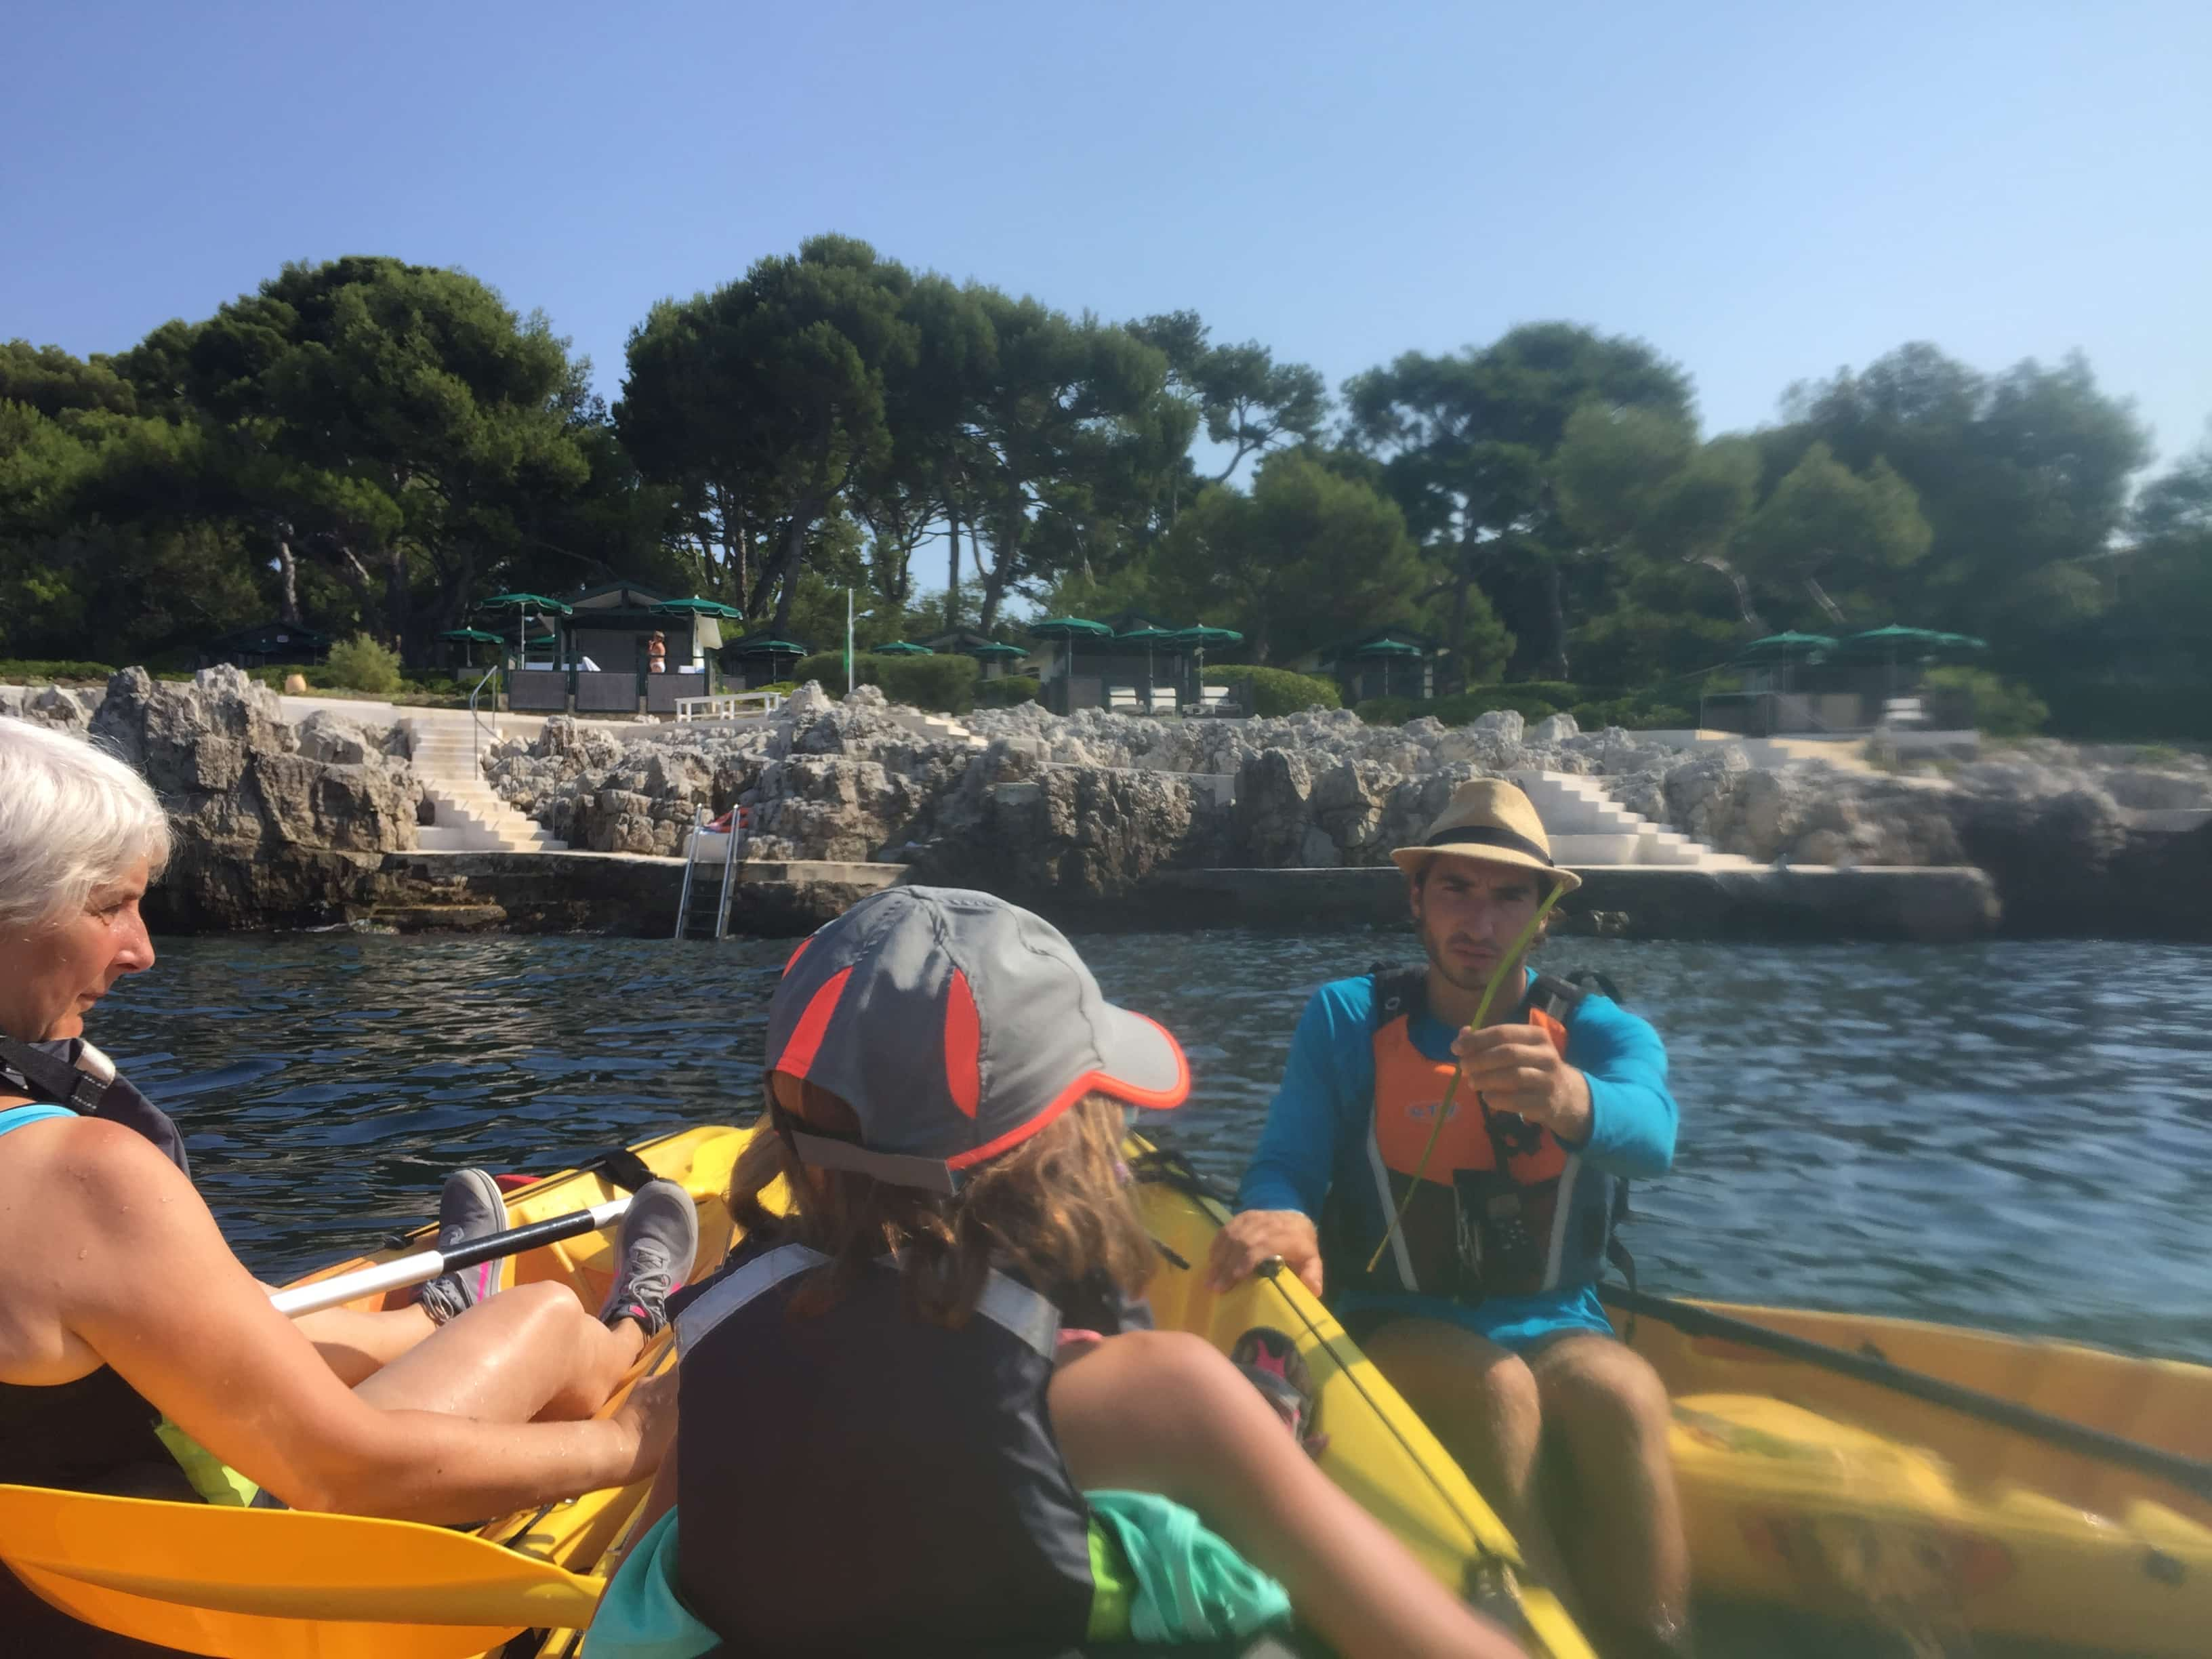 Kayaking in the Cape D'Antibes